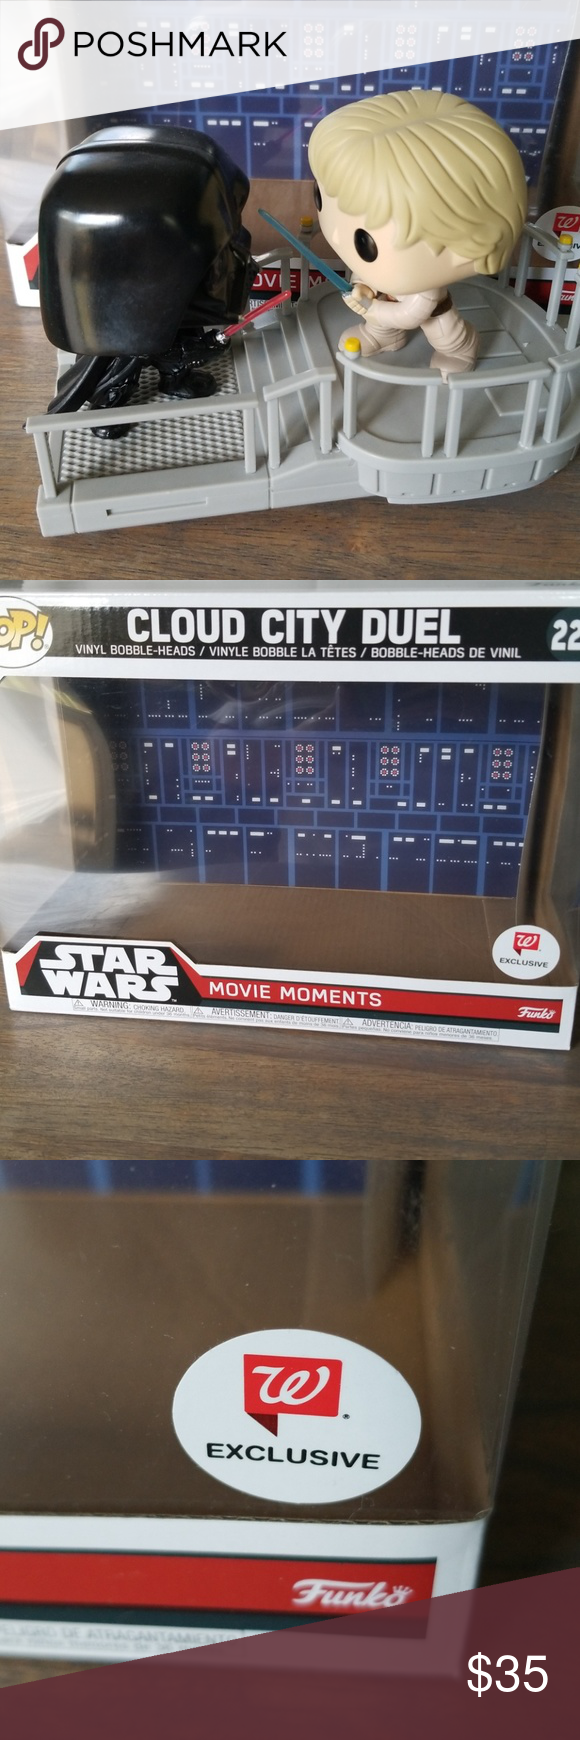 Star Wars Cloud City Duel Funko Pop Exclusive Funko Pop Exclusives Star Wars Funko Pop